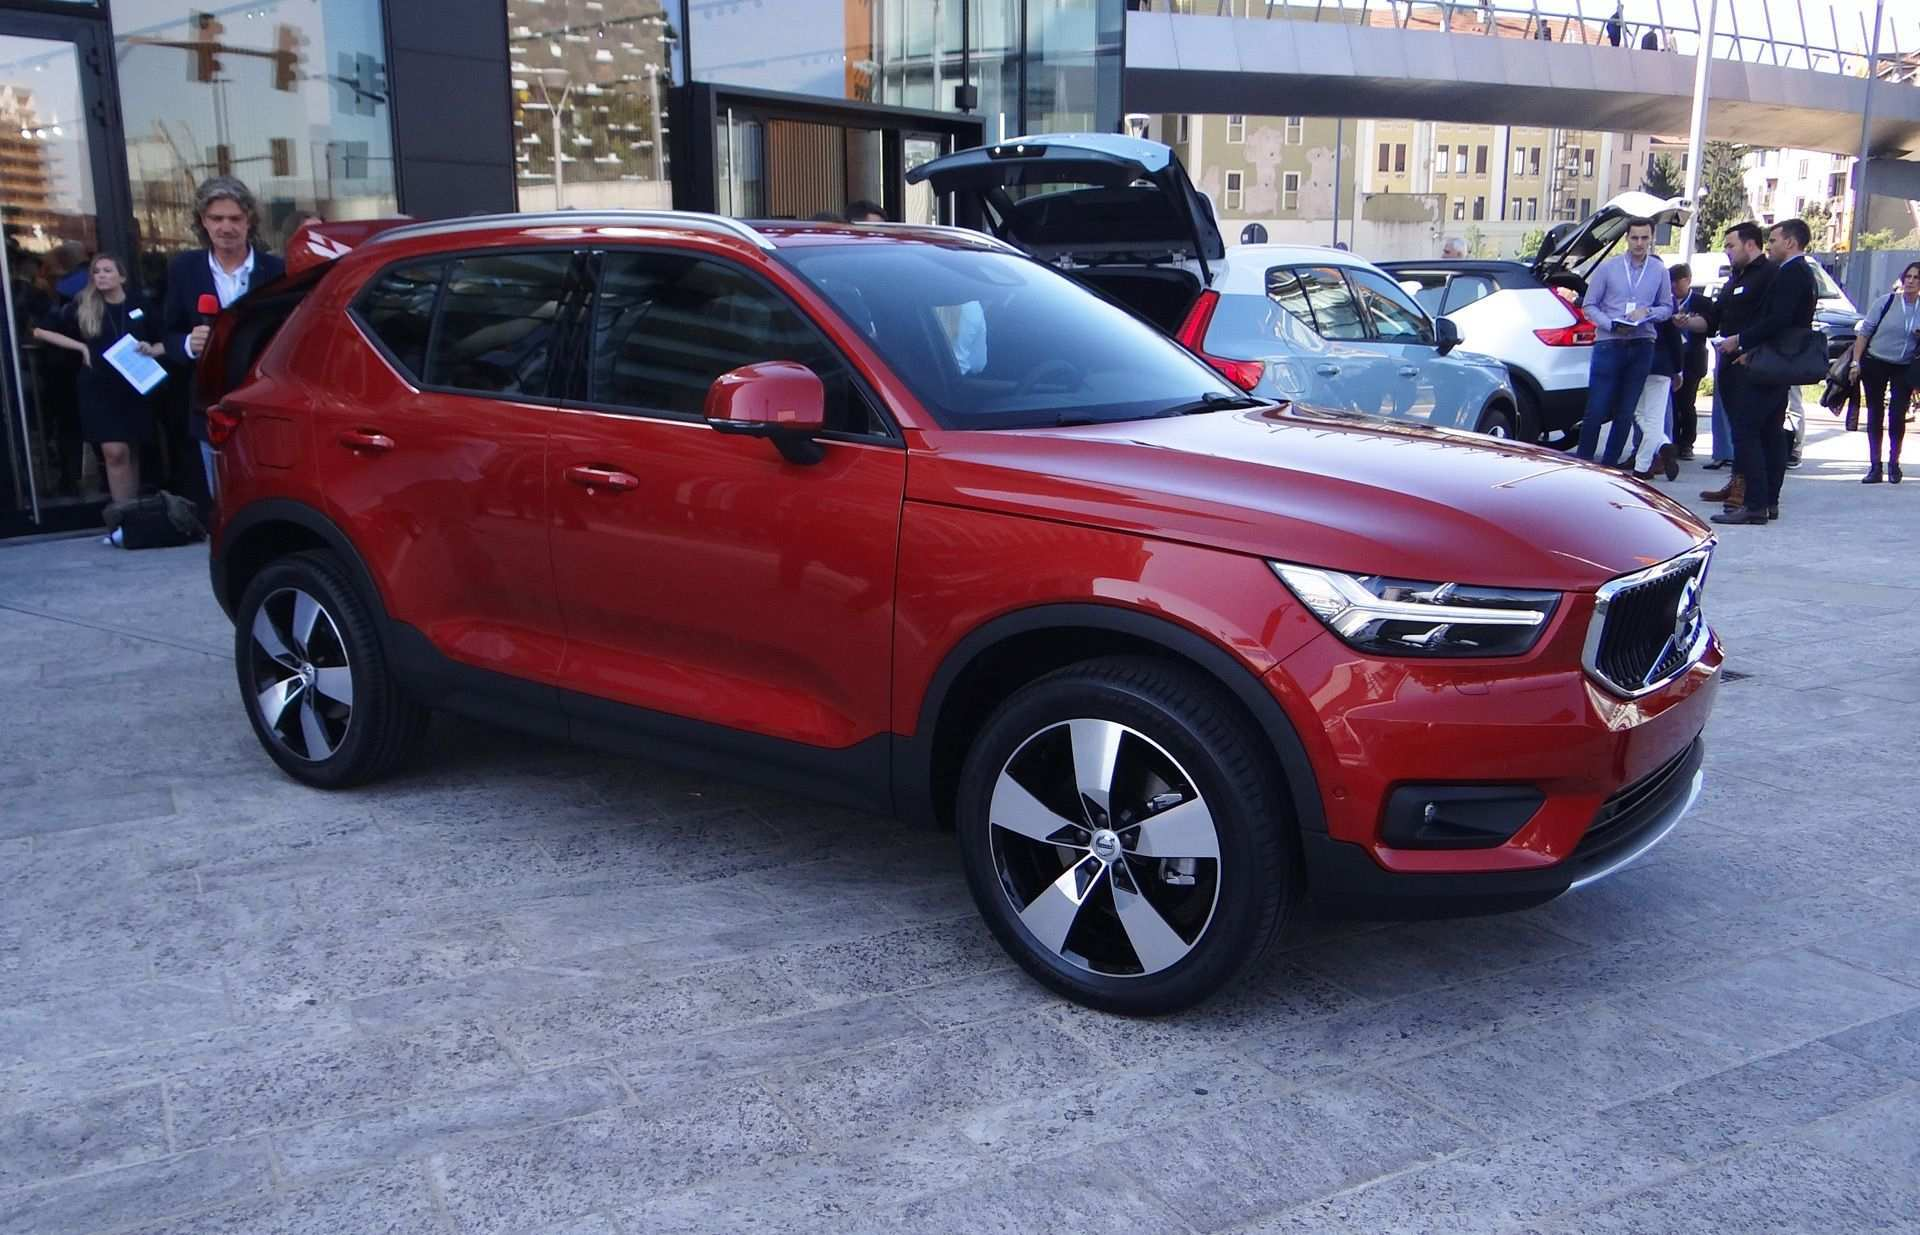 60 Great Volvo Overseas Delivery Pricing 2020 Pricing for Volvo Overseas Delivery Pricing 2020